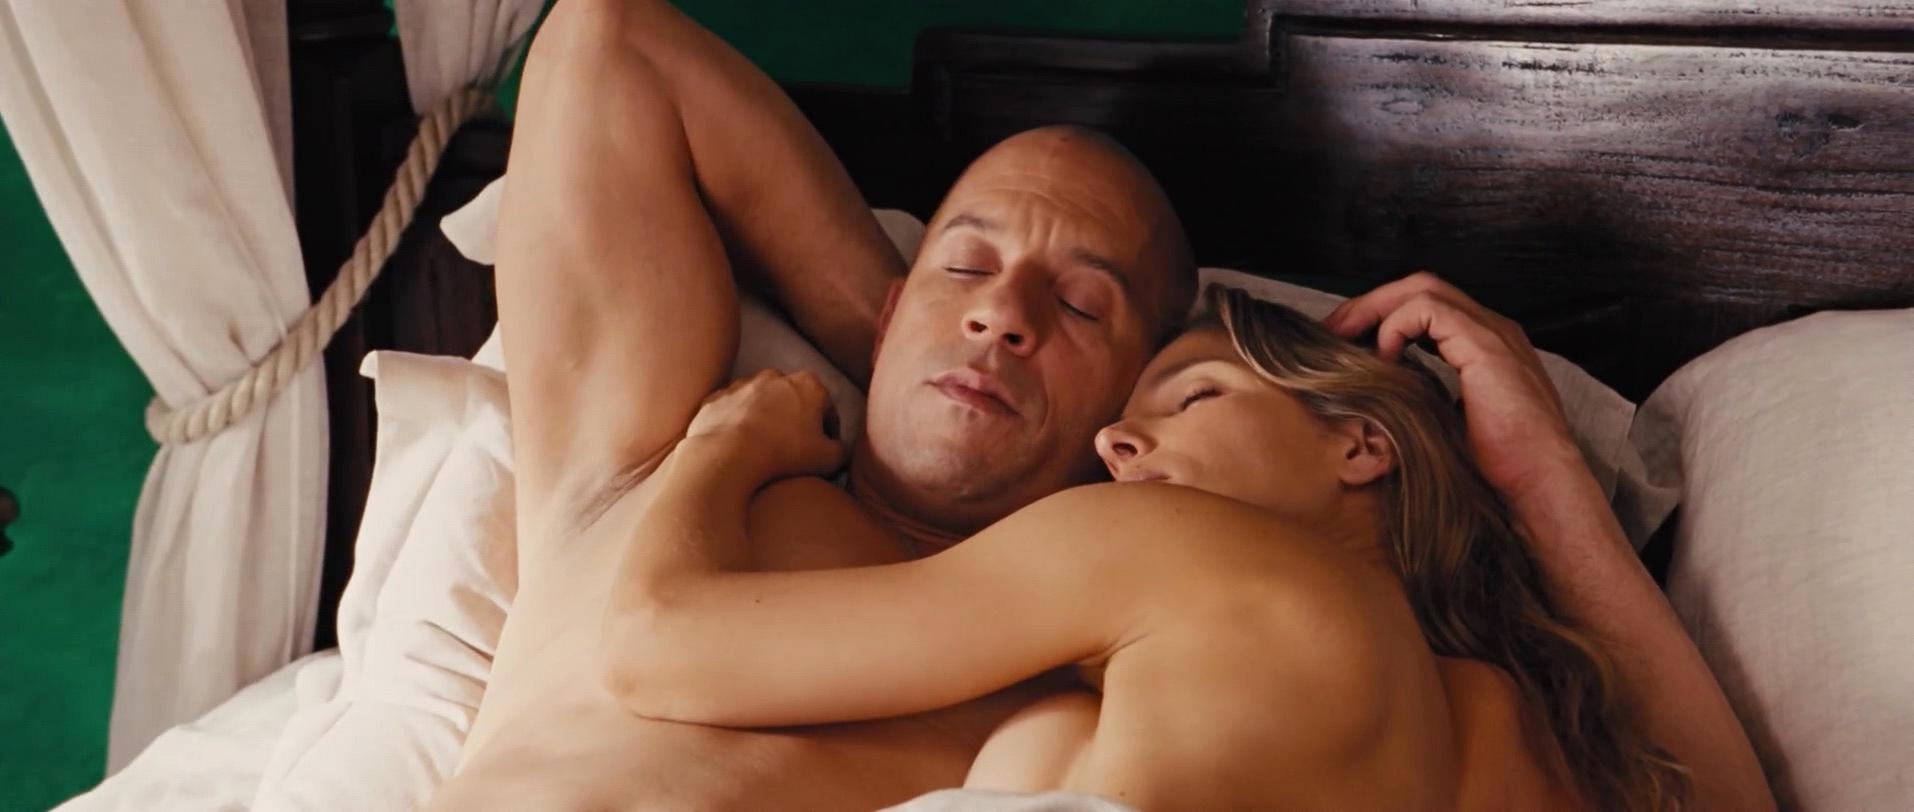 Elsa Pataky sexy - Fast and Furious 6 (2013)